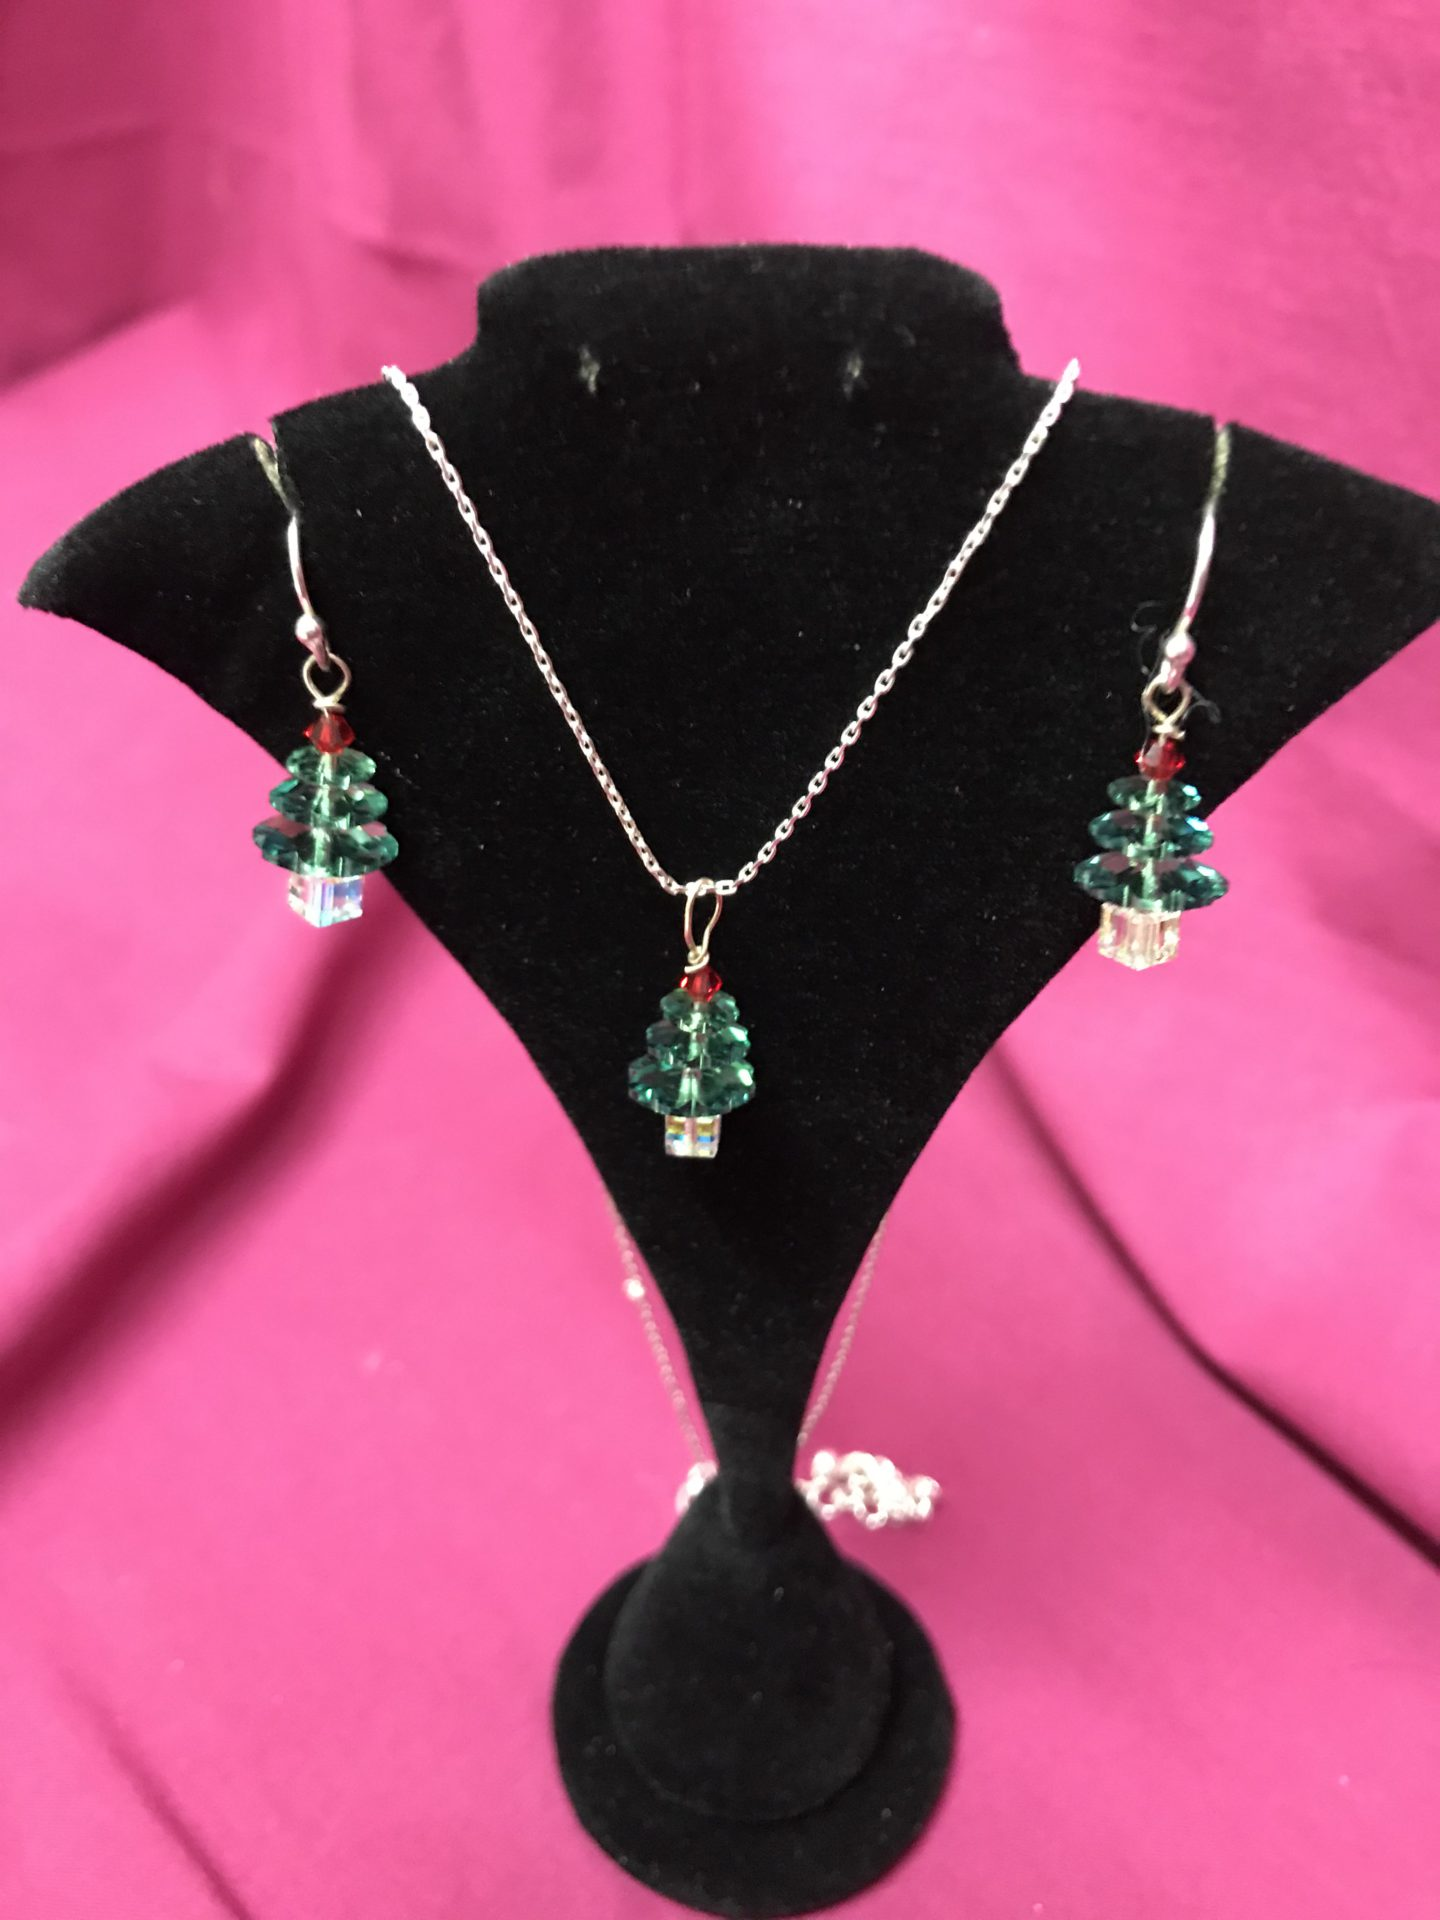 341 Christmas tree necklace & earrings